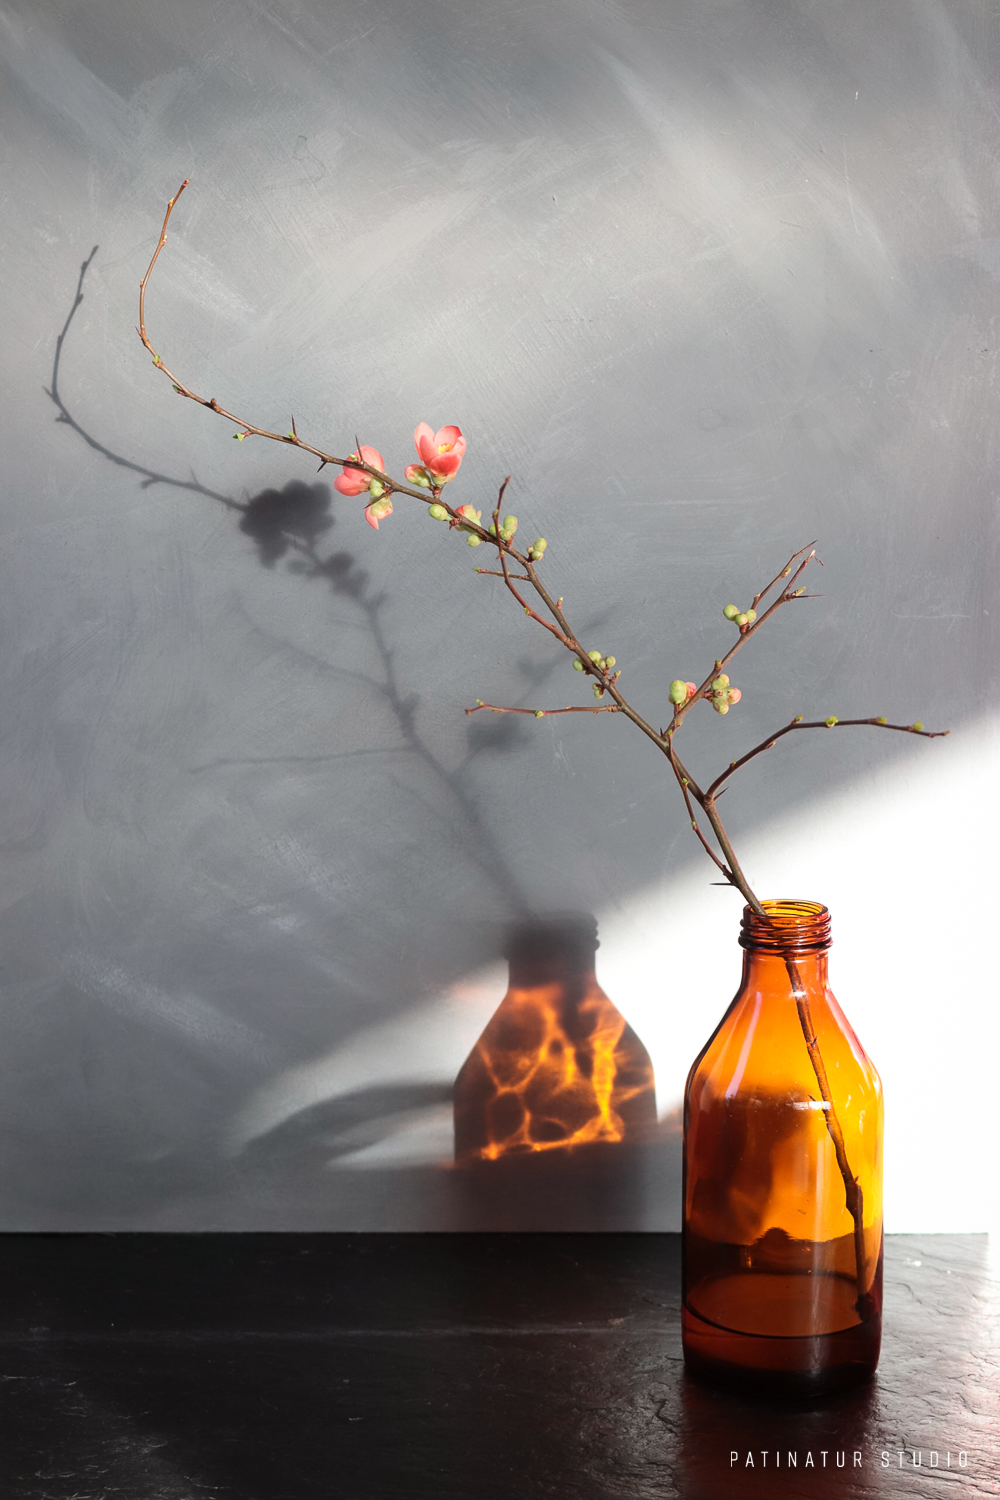 Photo Art | Still life with quince blossom in amber glass bottle